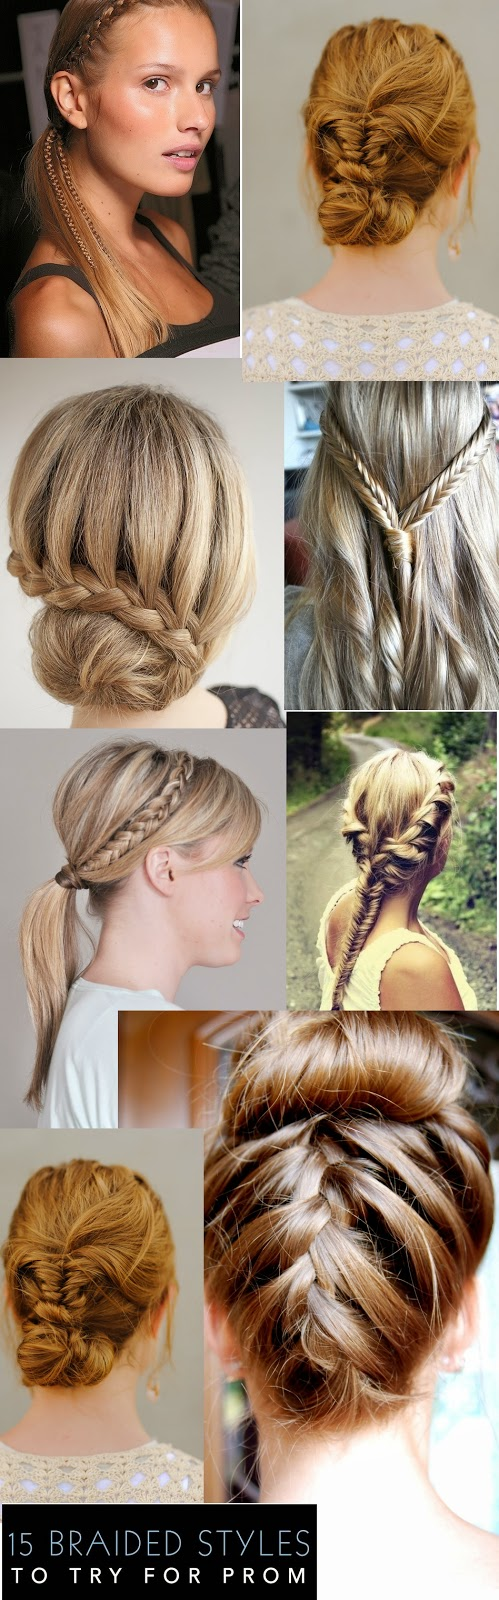 15 Braided Prom Hairstyles You Have toSee